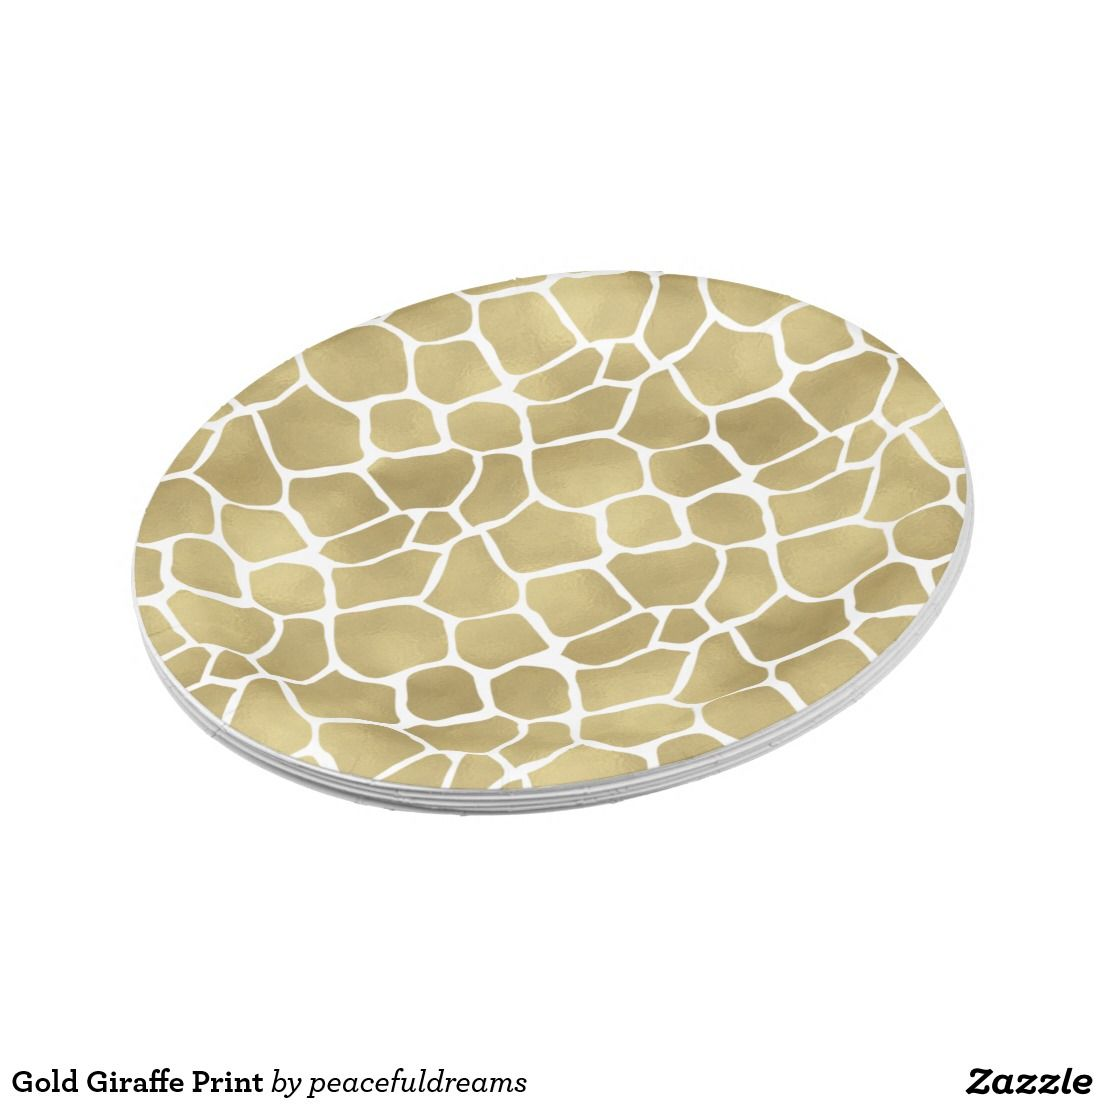 Shop Gold Giraffe Print Paper Plate created by peacefuldreams.  sc 1 st  Pinterest & Gold Giraffe Print 7 Inch Paper Plate | Plates | Pinterest | Giraffe